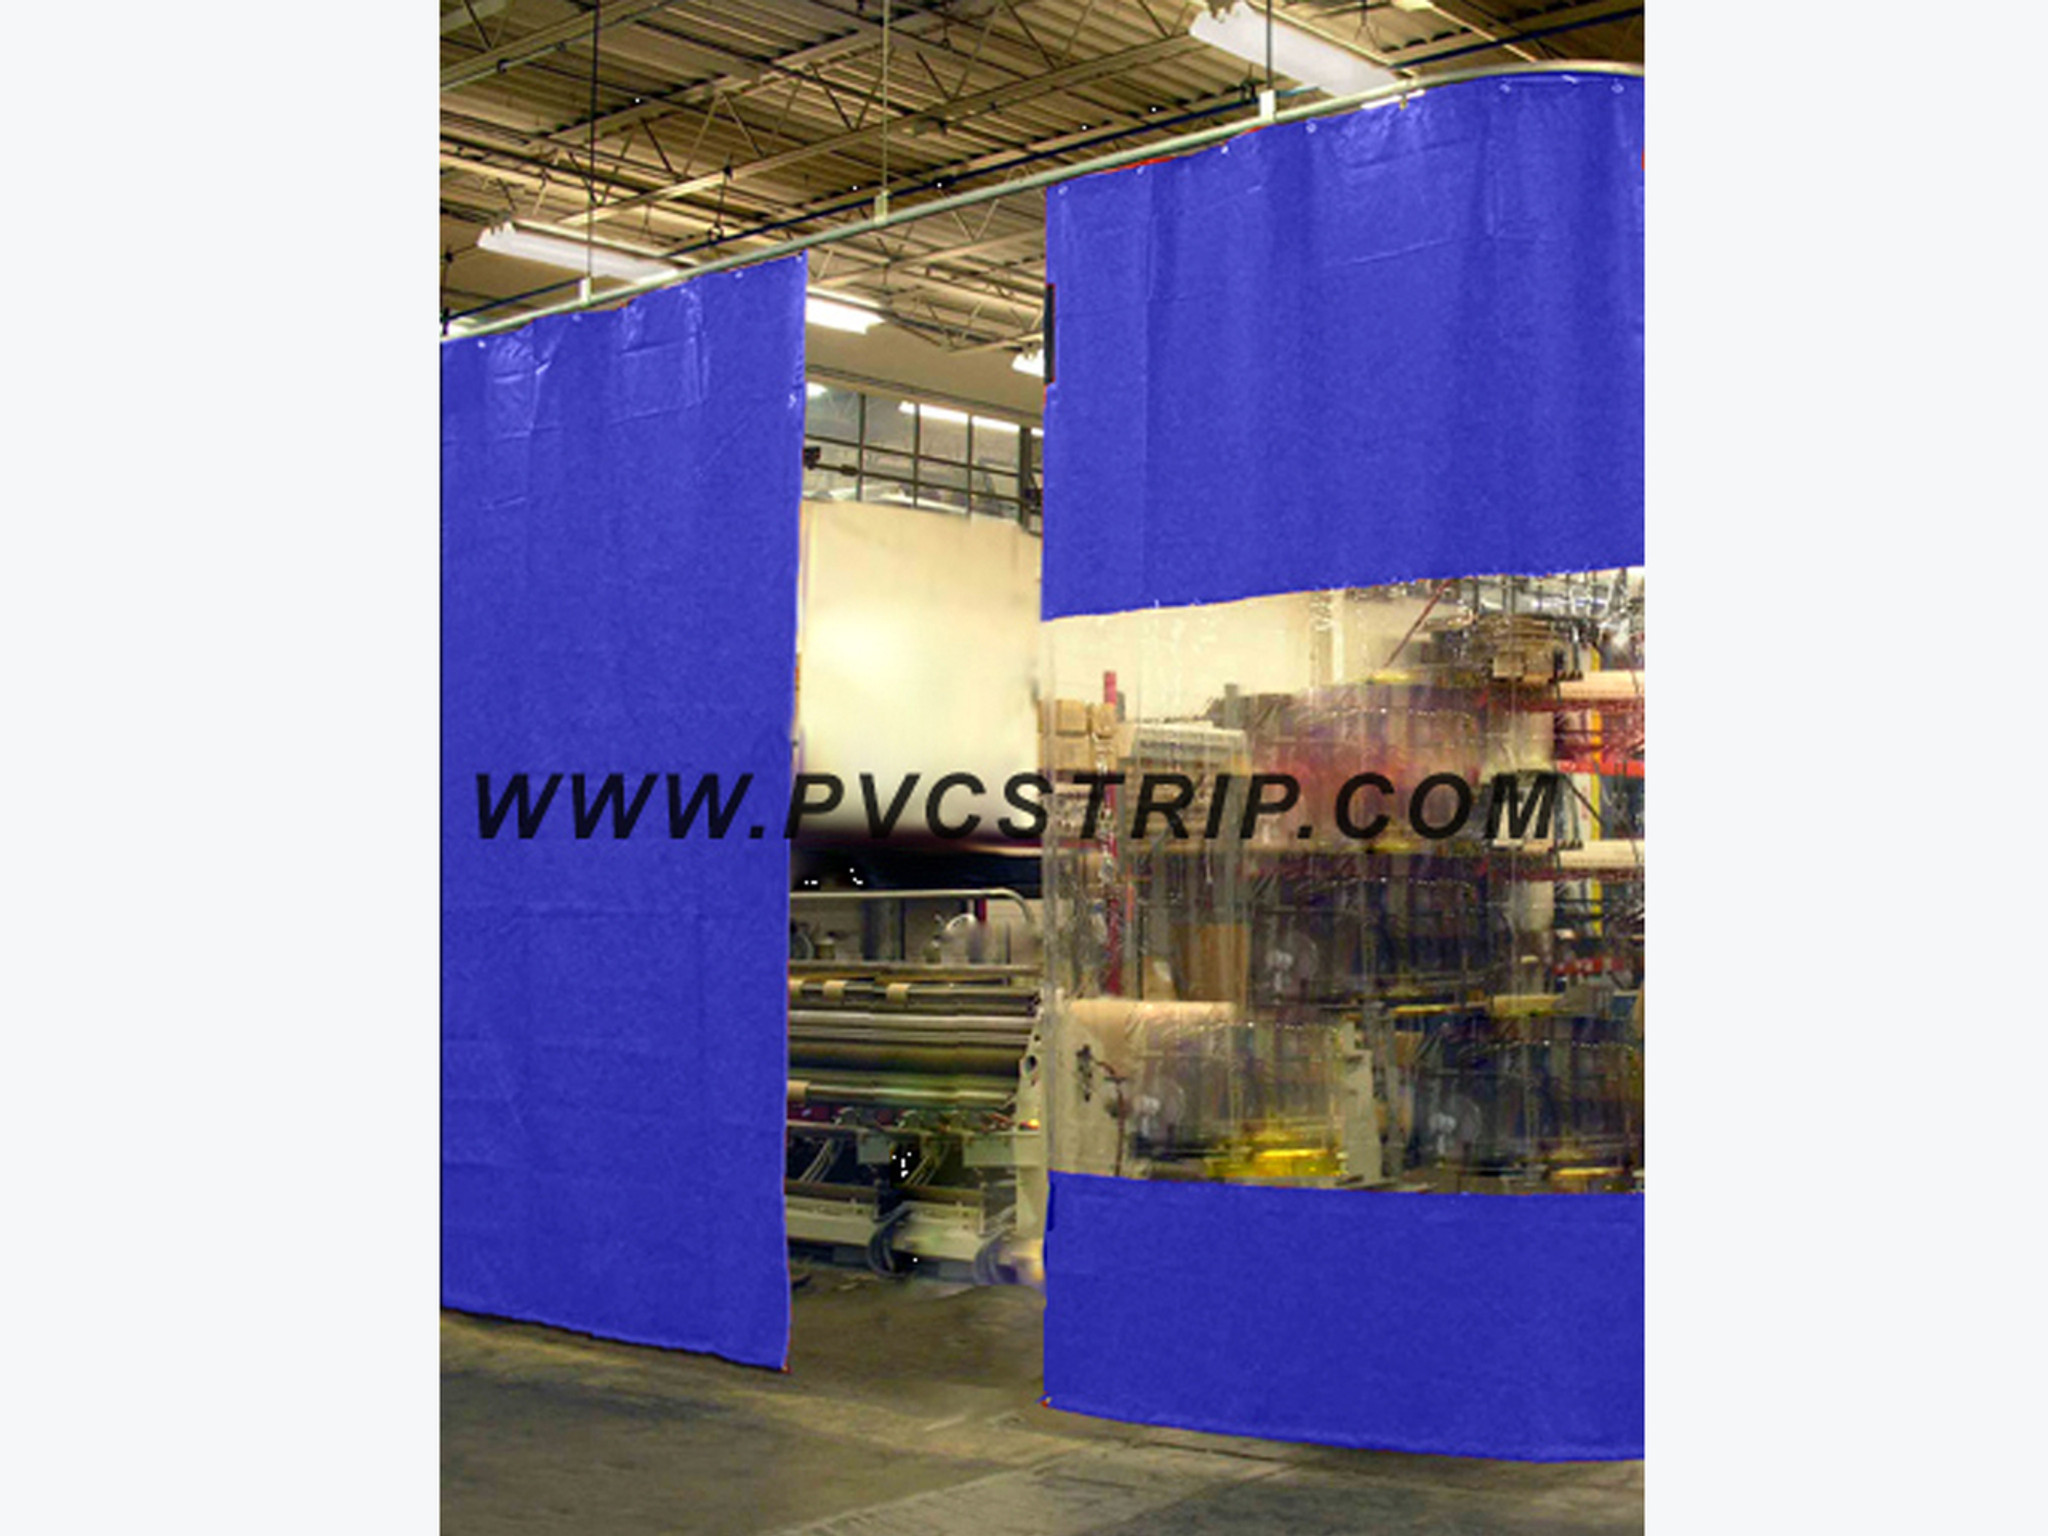 Ready To Ship Industrial Curtain Walls PVCStripcom